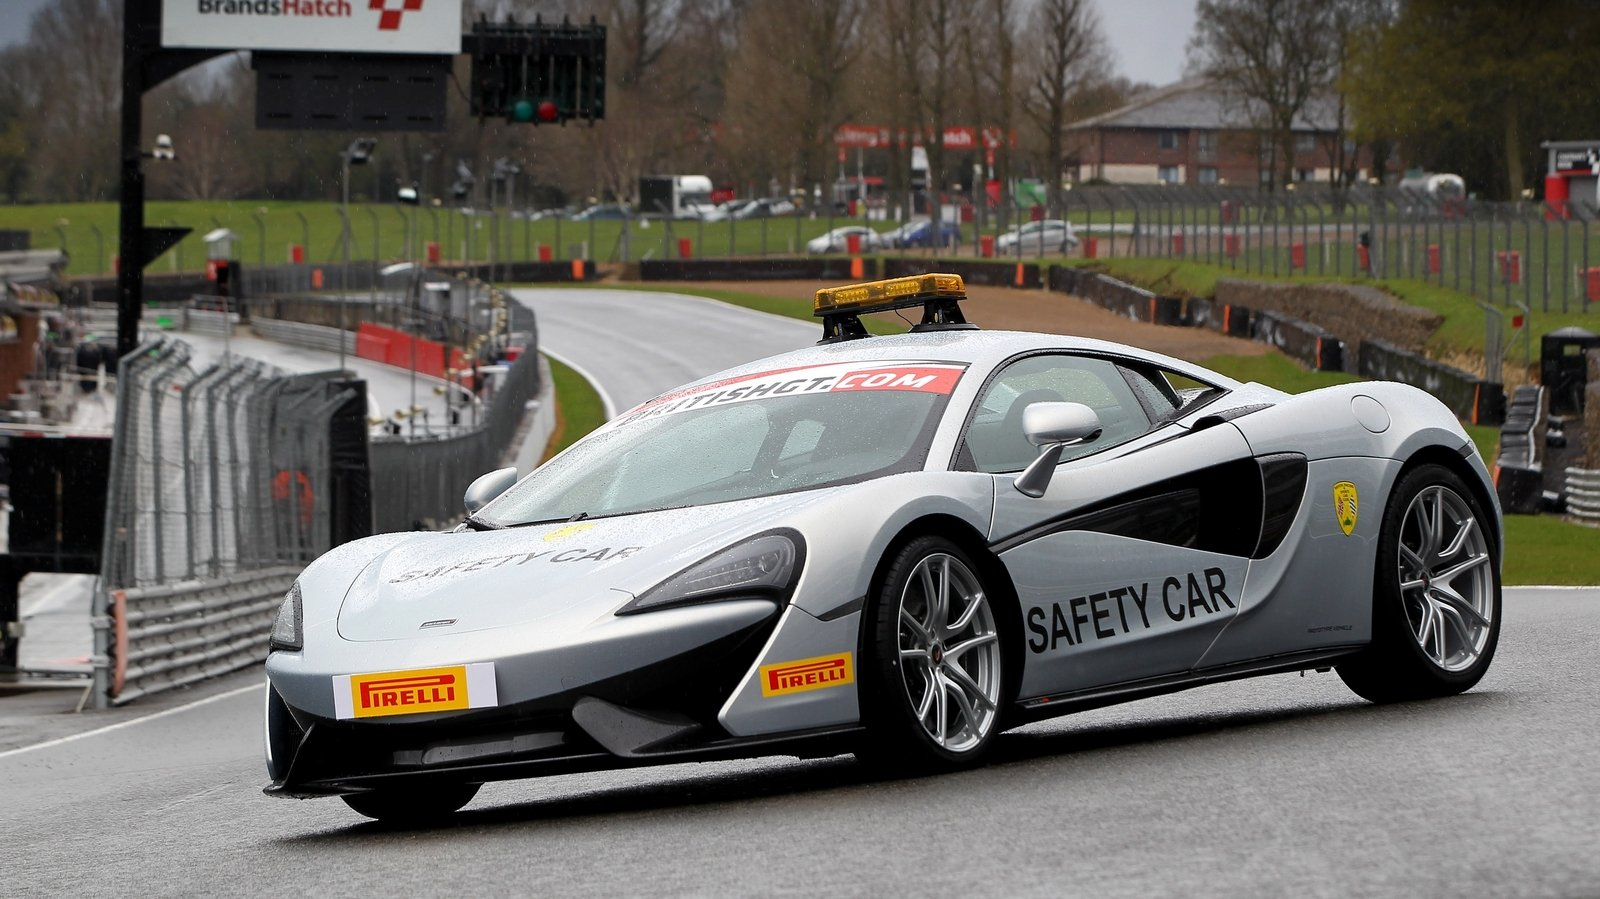 Mclaren 570s Becomes Safety Car Of 2016 British Gt